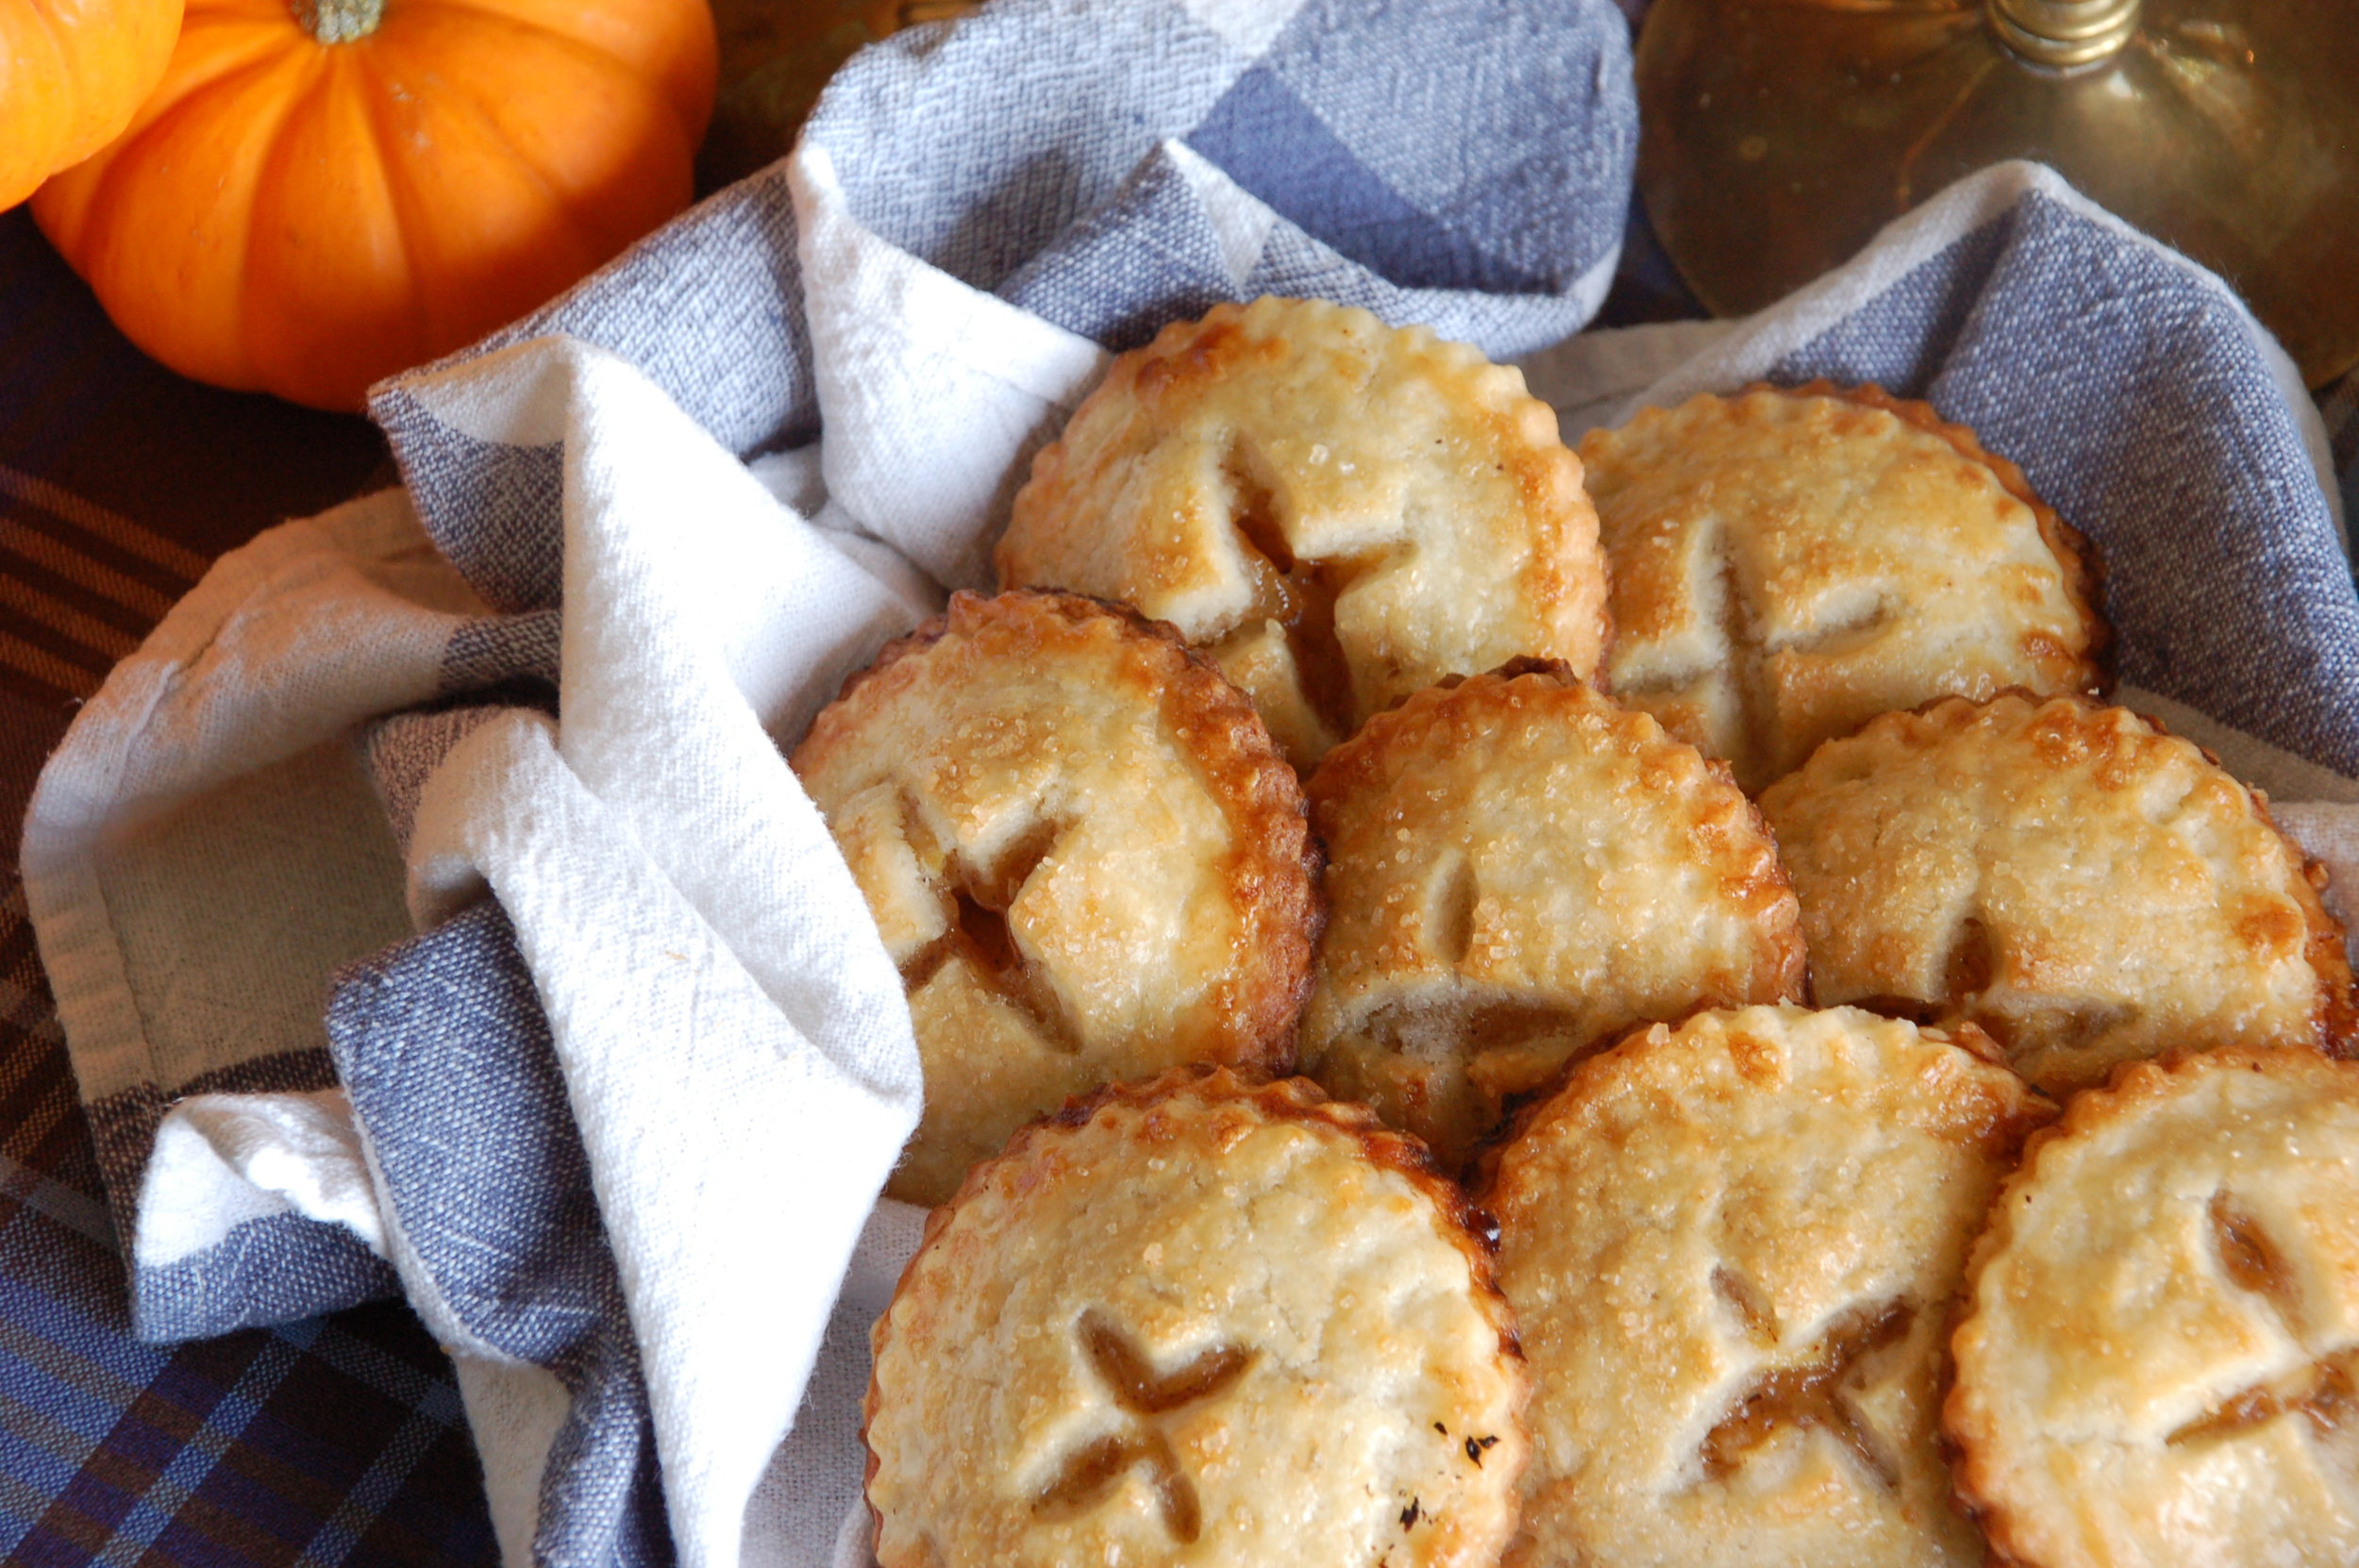 These little hand apple pies are perfect to bring along.